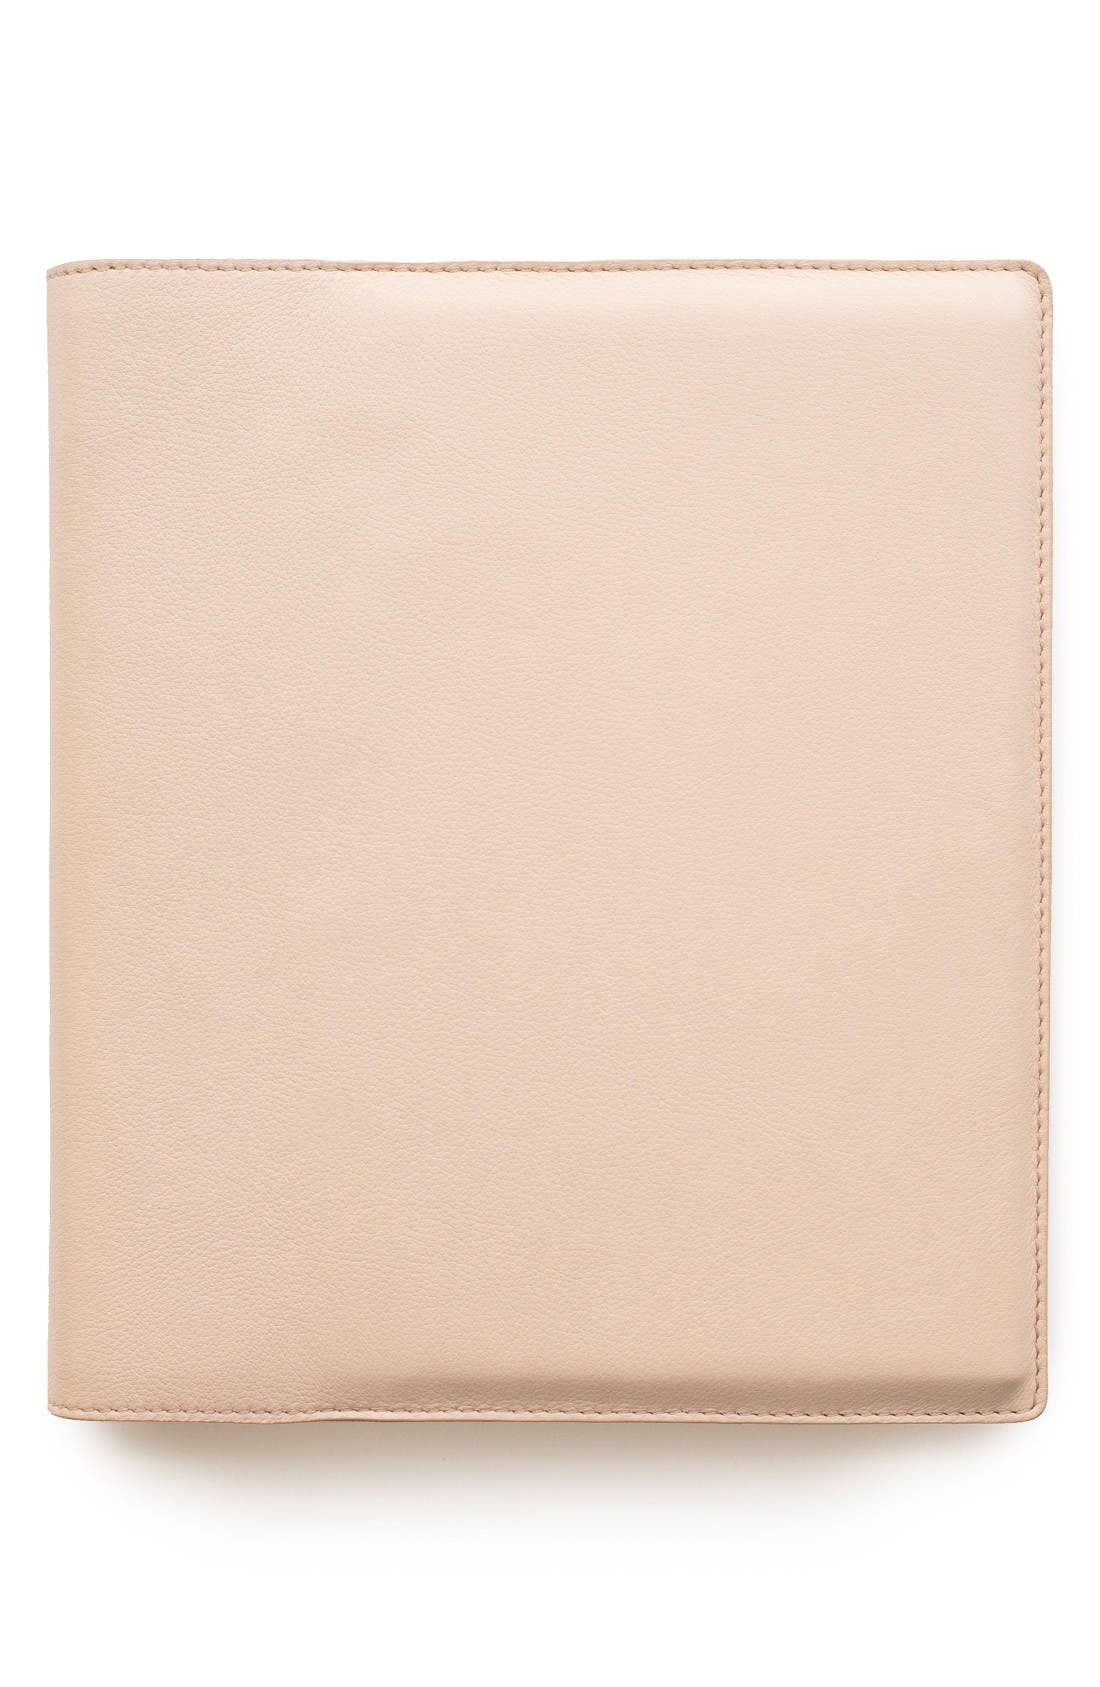 SUGAR PAPER Leather Agenda Cover